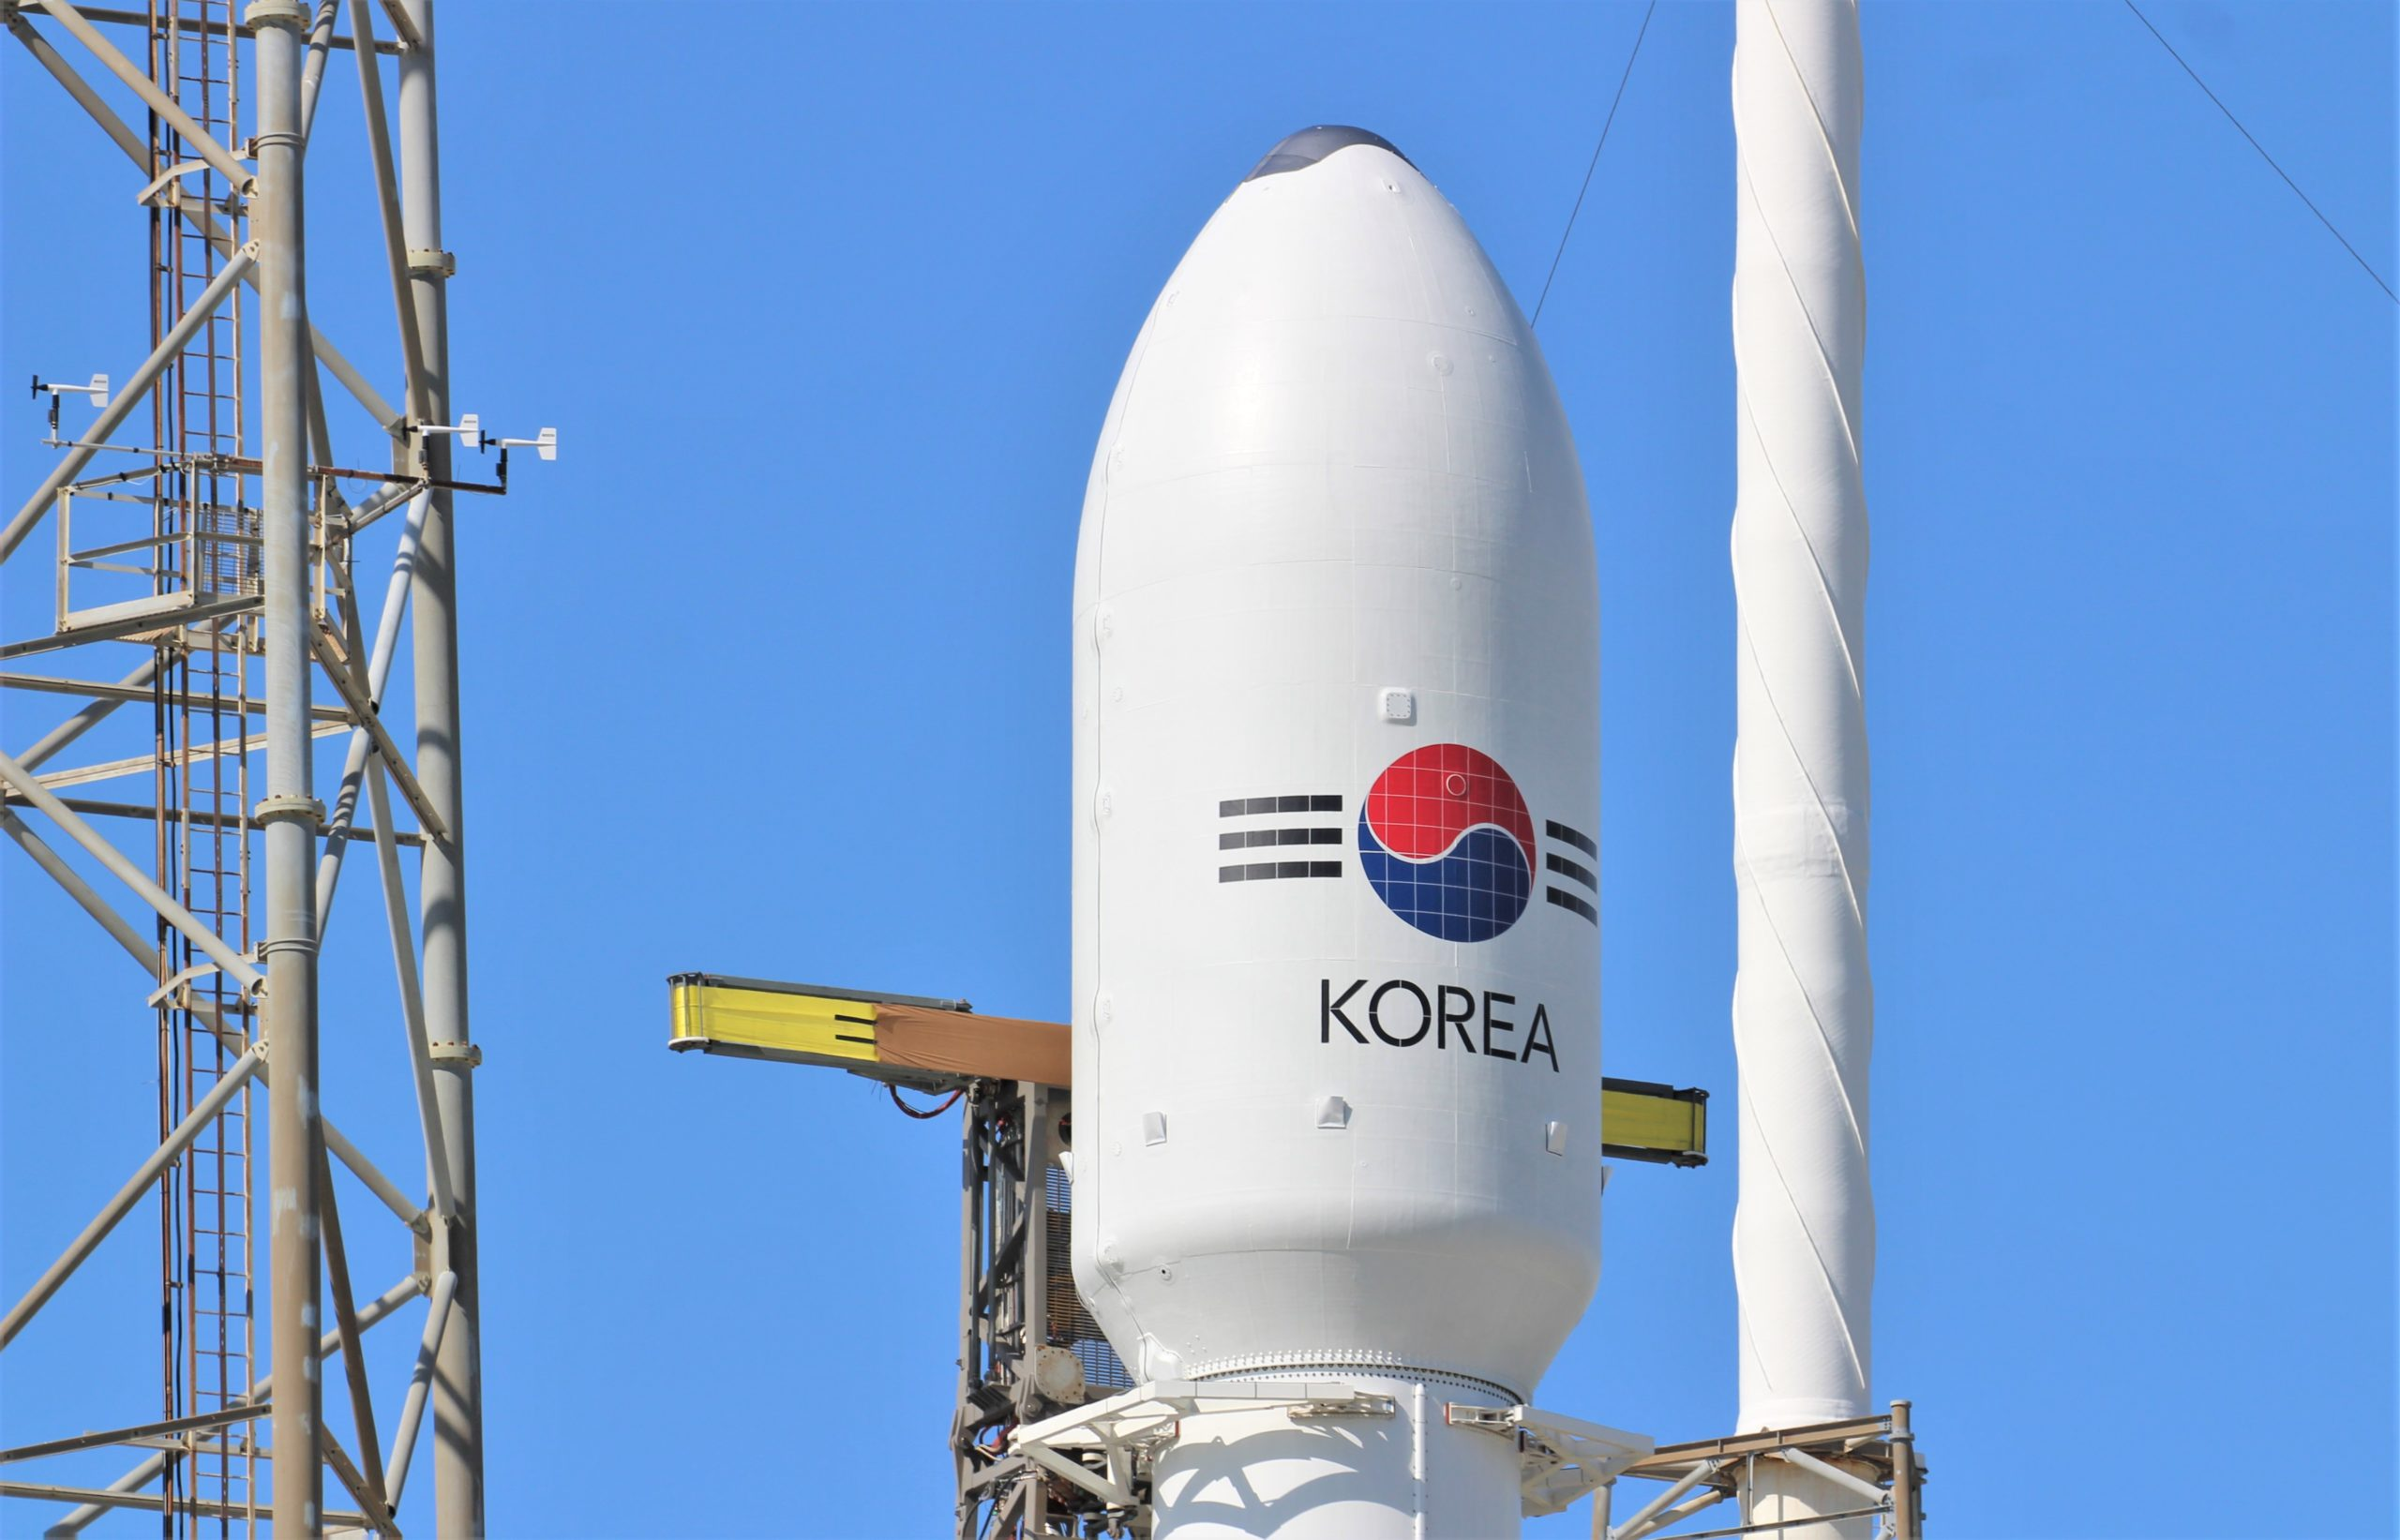 SpaceX Falcon 9 Set for Blastoff with Anasis-II for South Korean Military: Watch Live/Photos